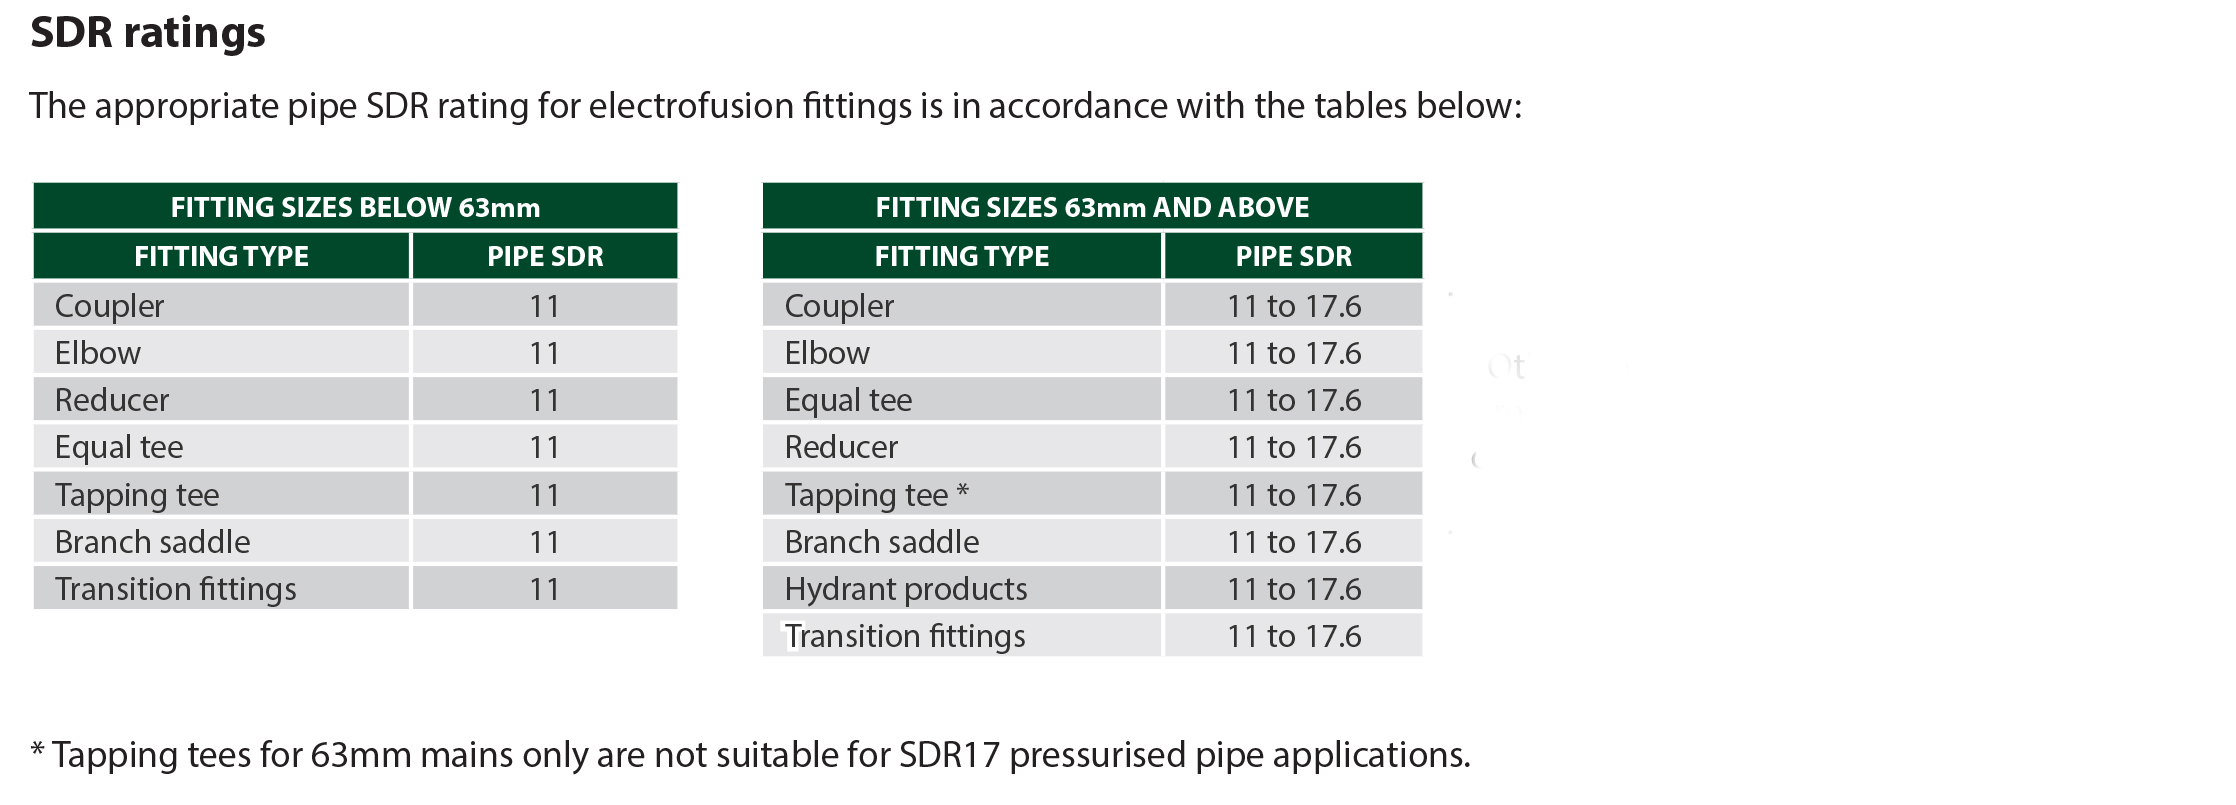 AWT FUSION PE ELECTROFUSION FITTING SDR  RATING